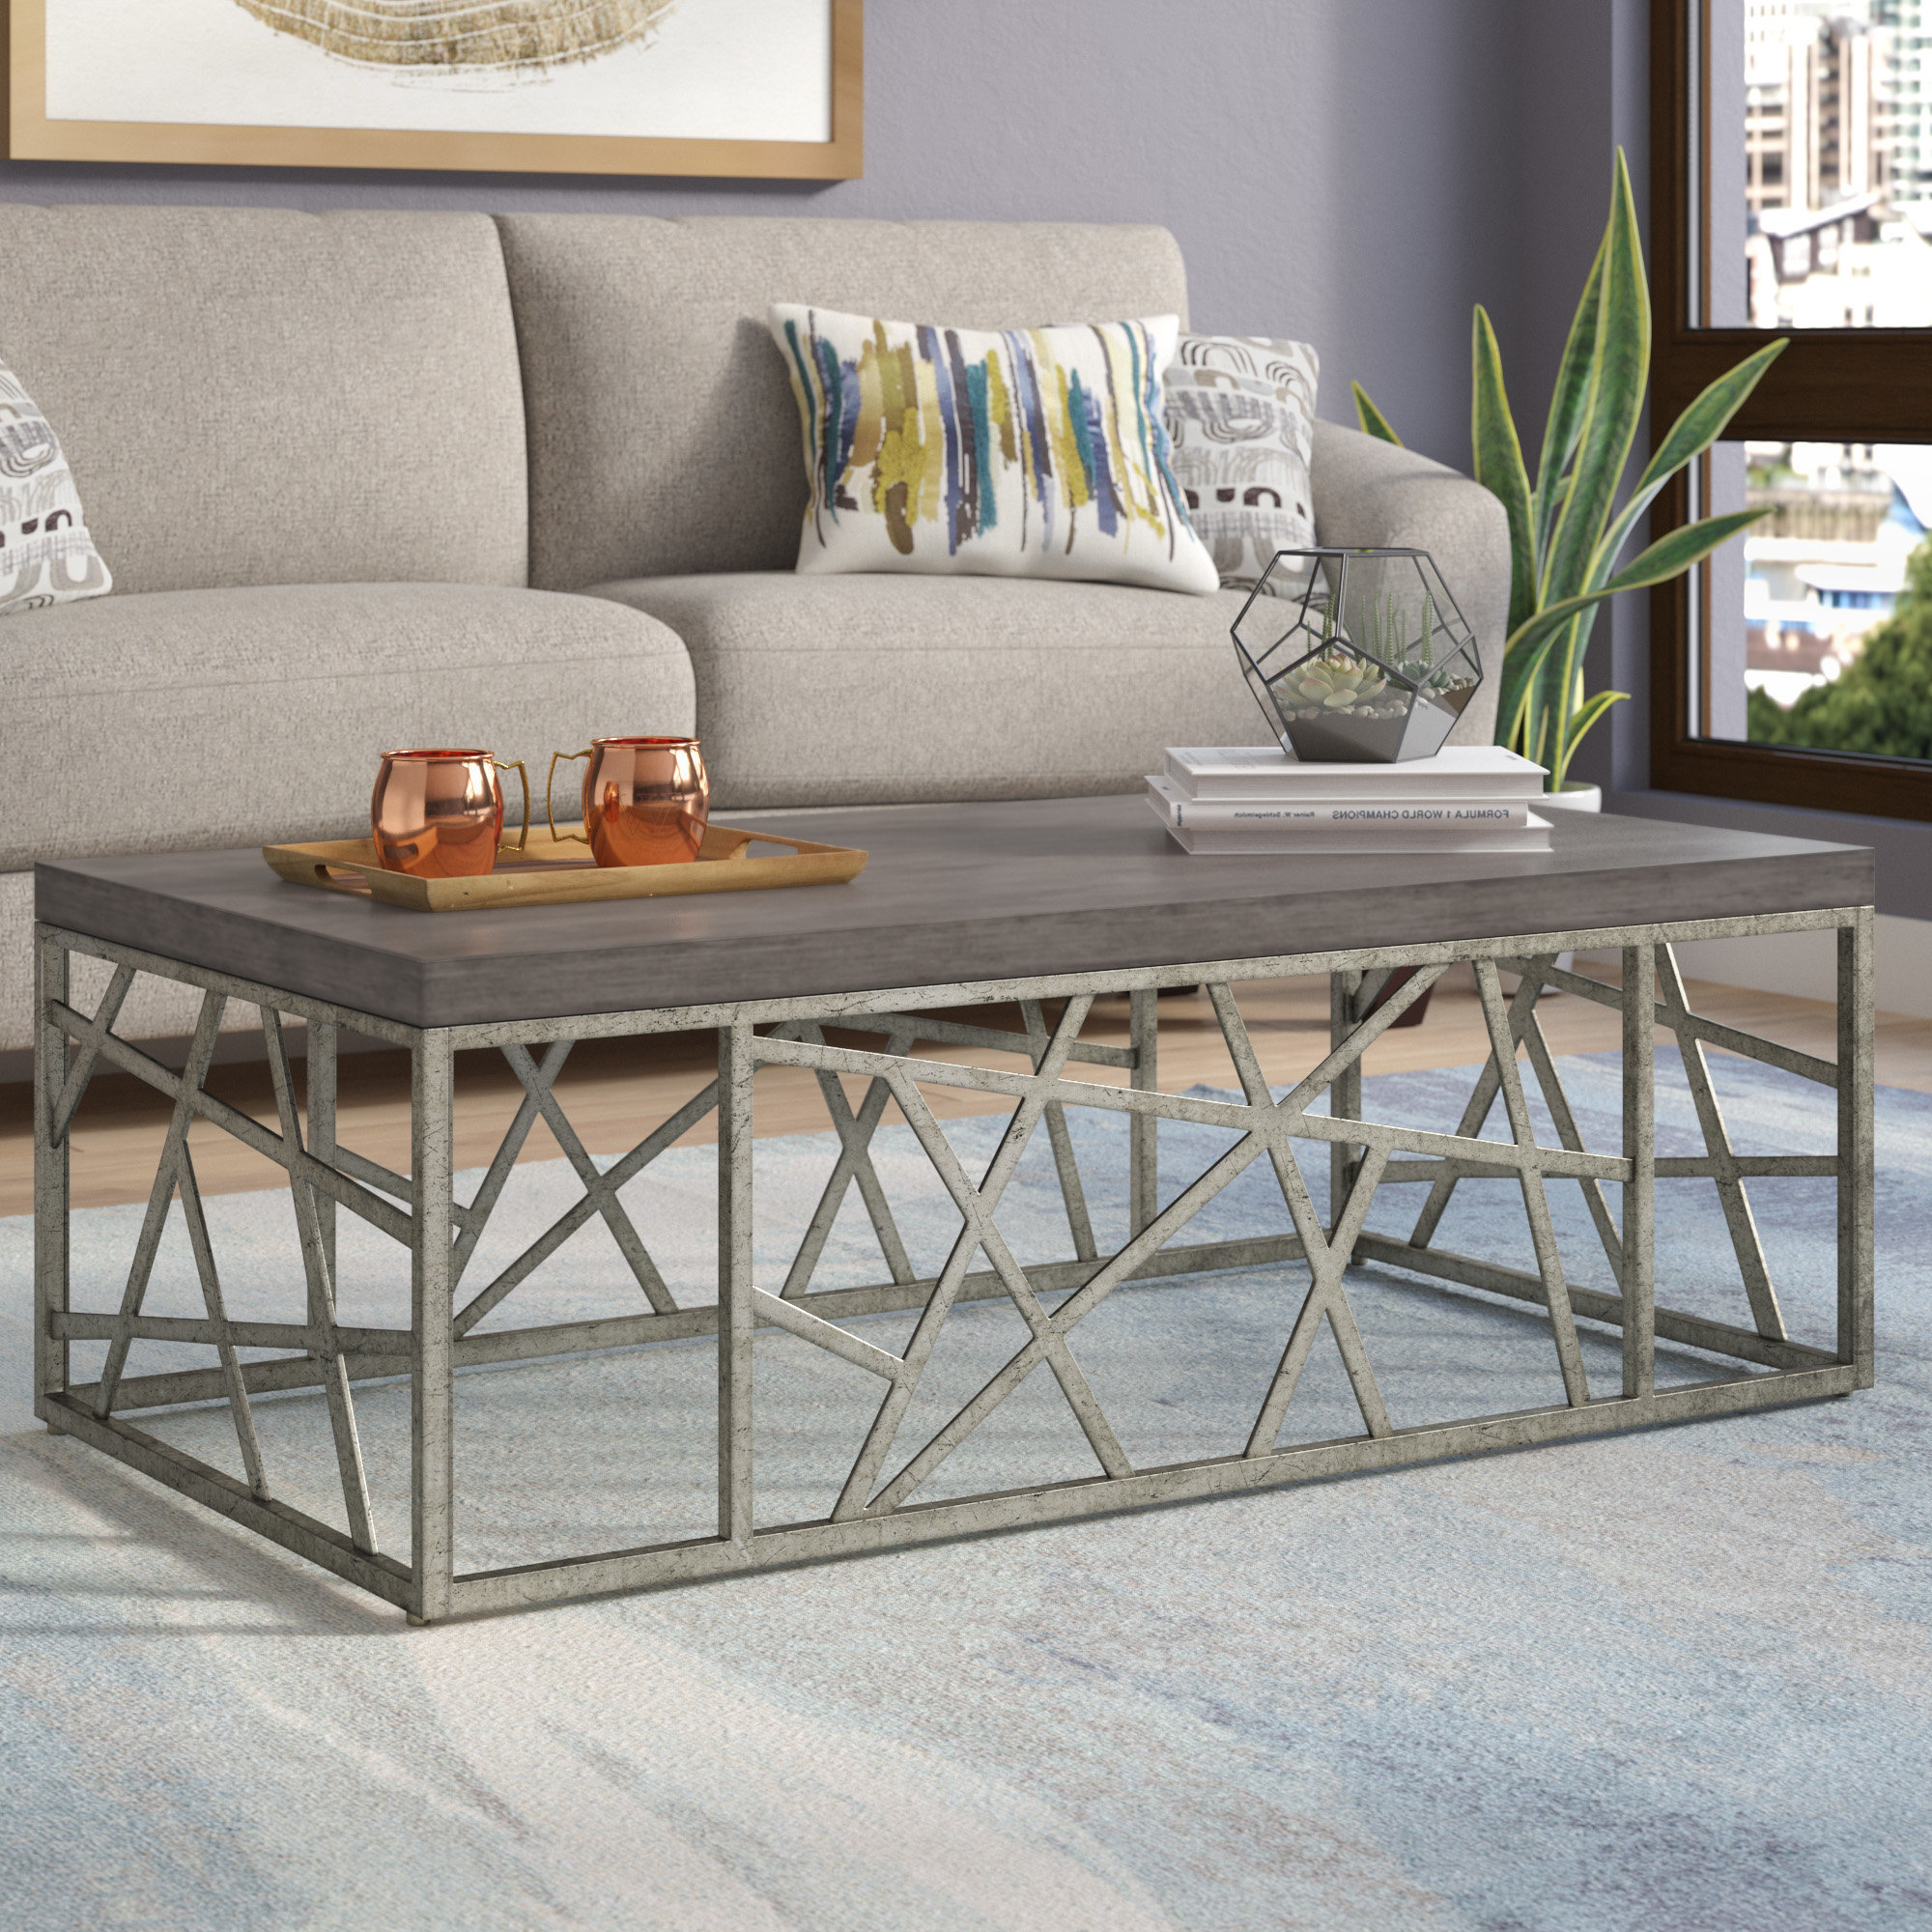 Well Liked Brayden Studio Hiers Coffee Table & Reviews (View 17 of 20)